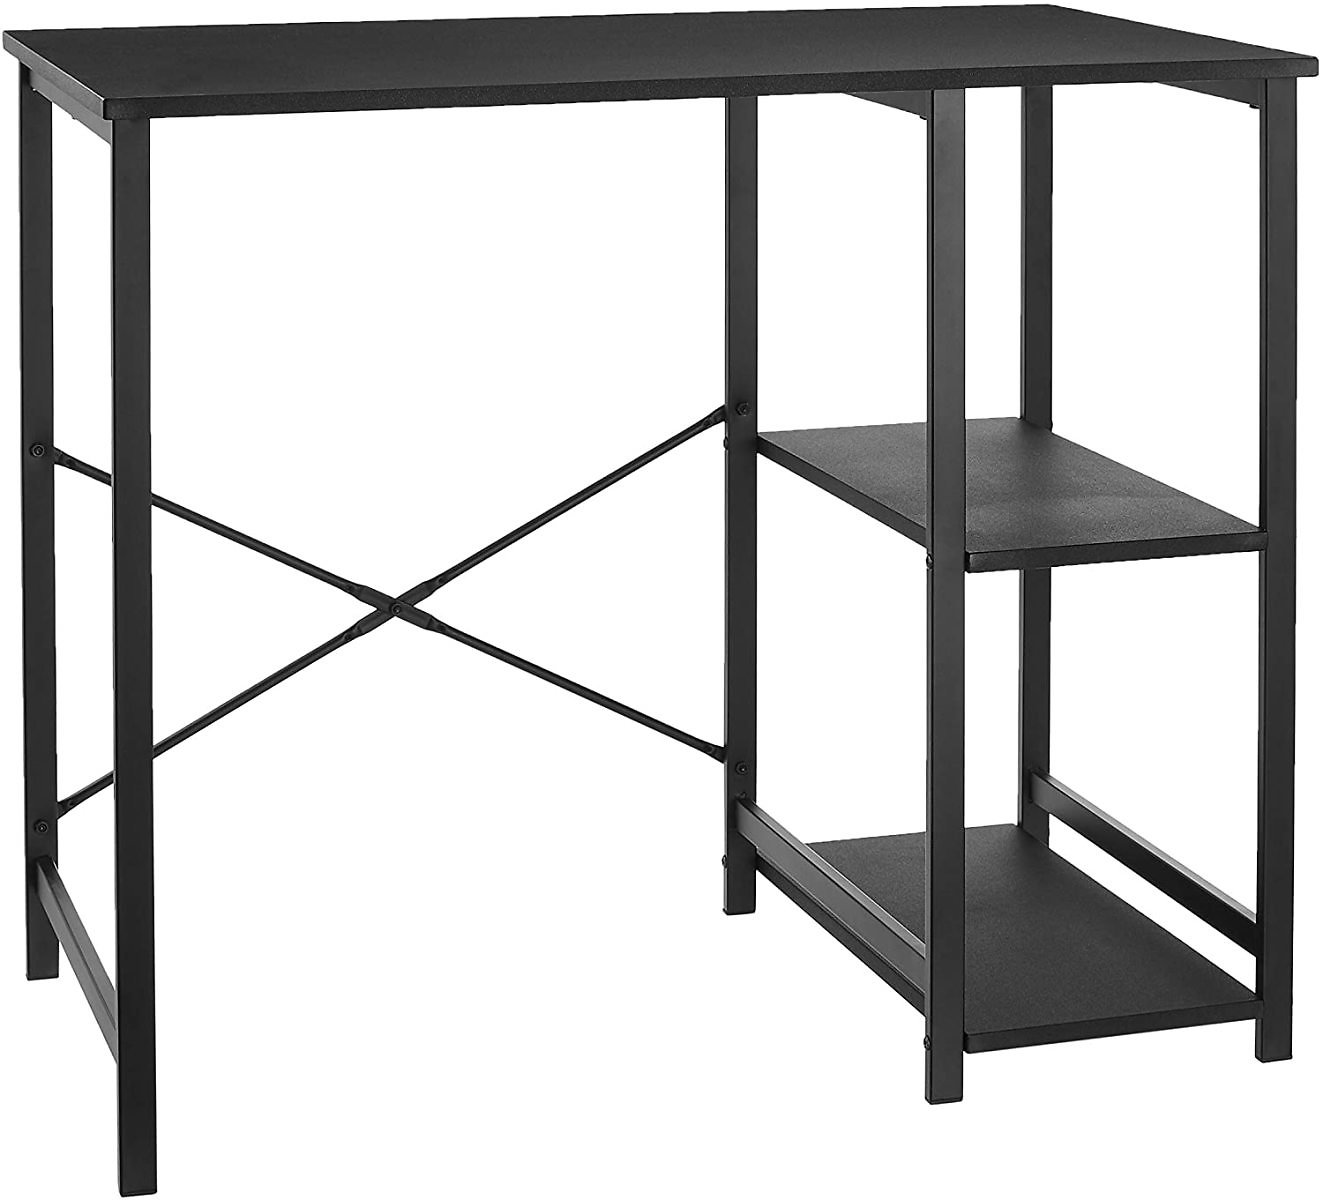 Amazon Basics Classic, Home Office Computer Desk With Shelves, Black for $43.59